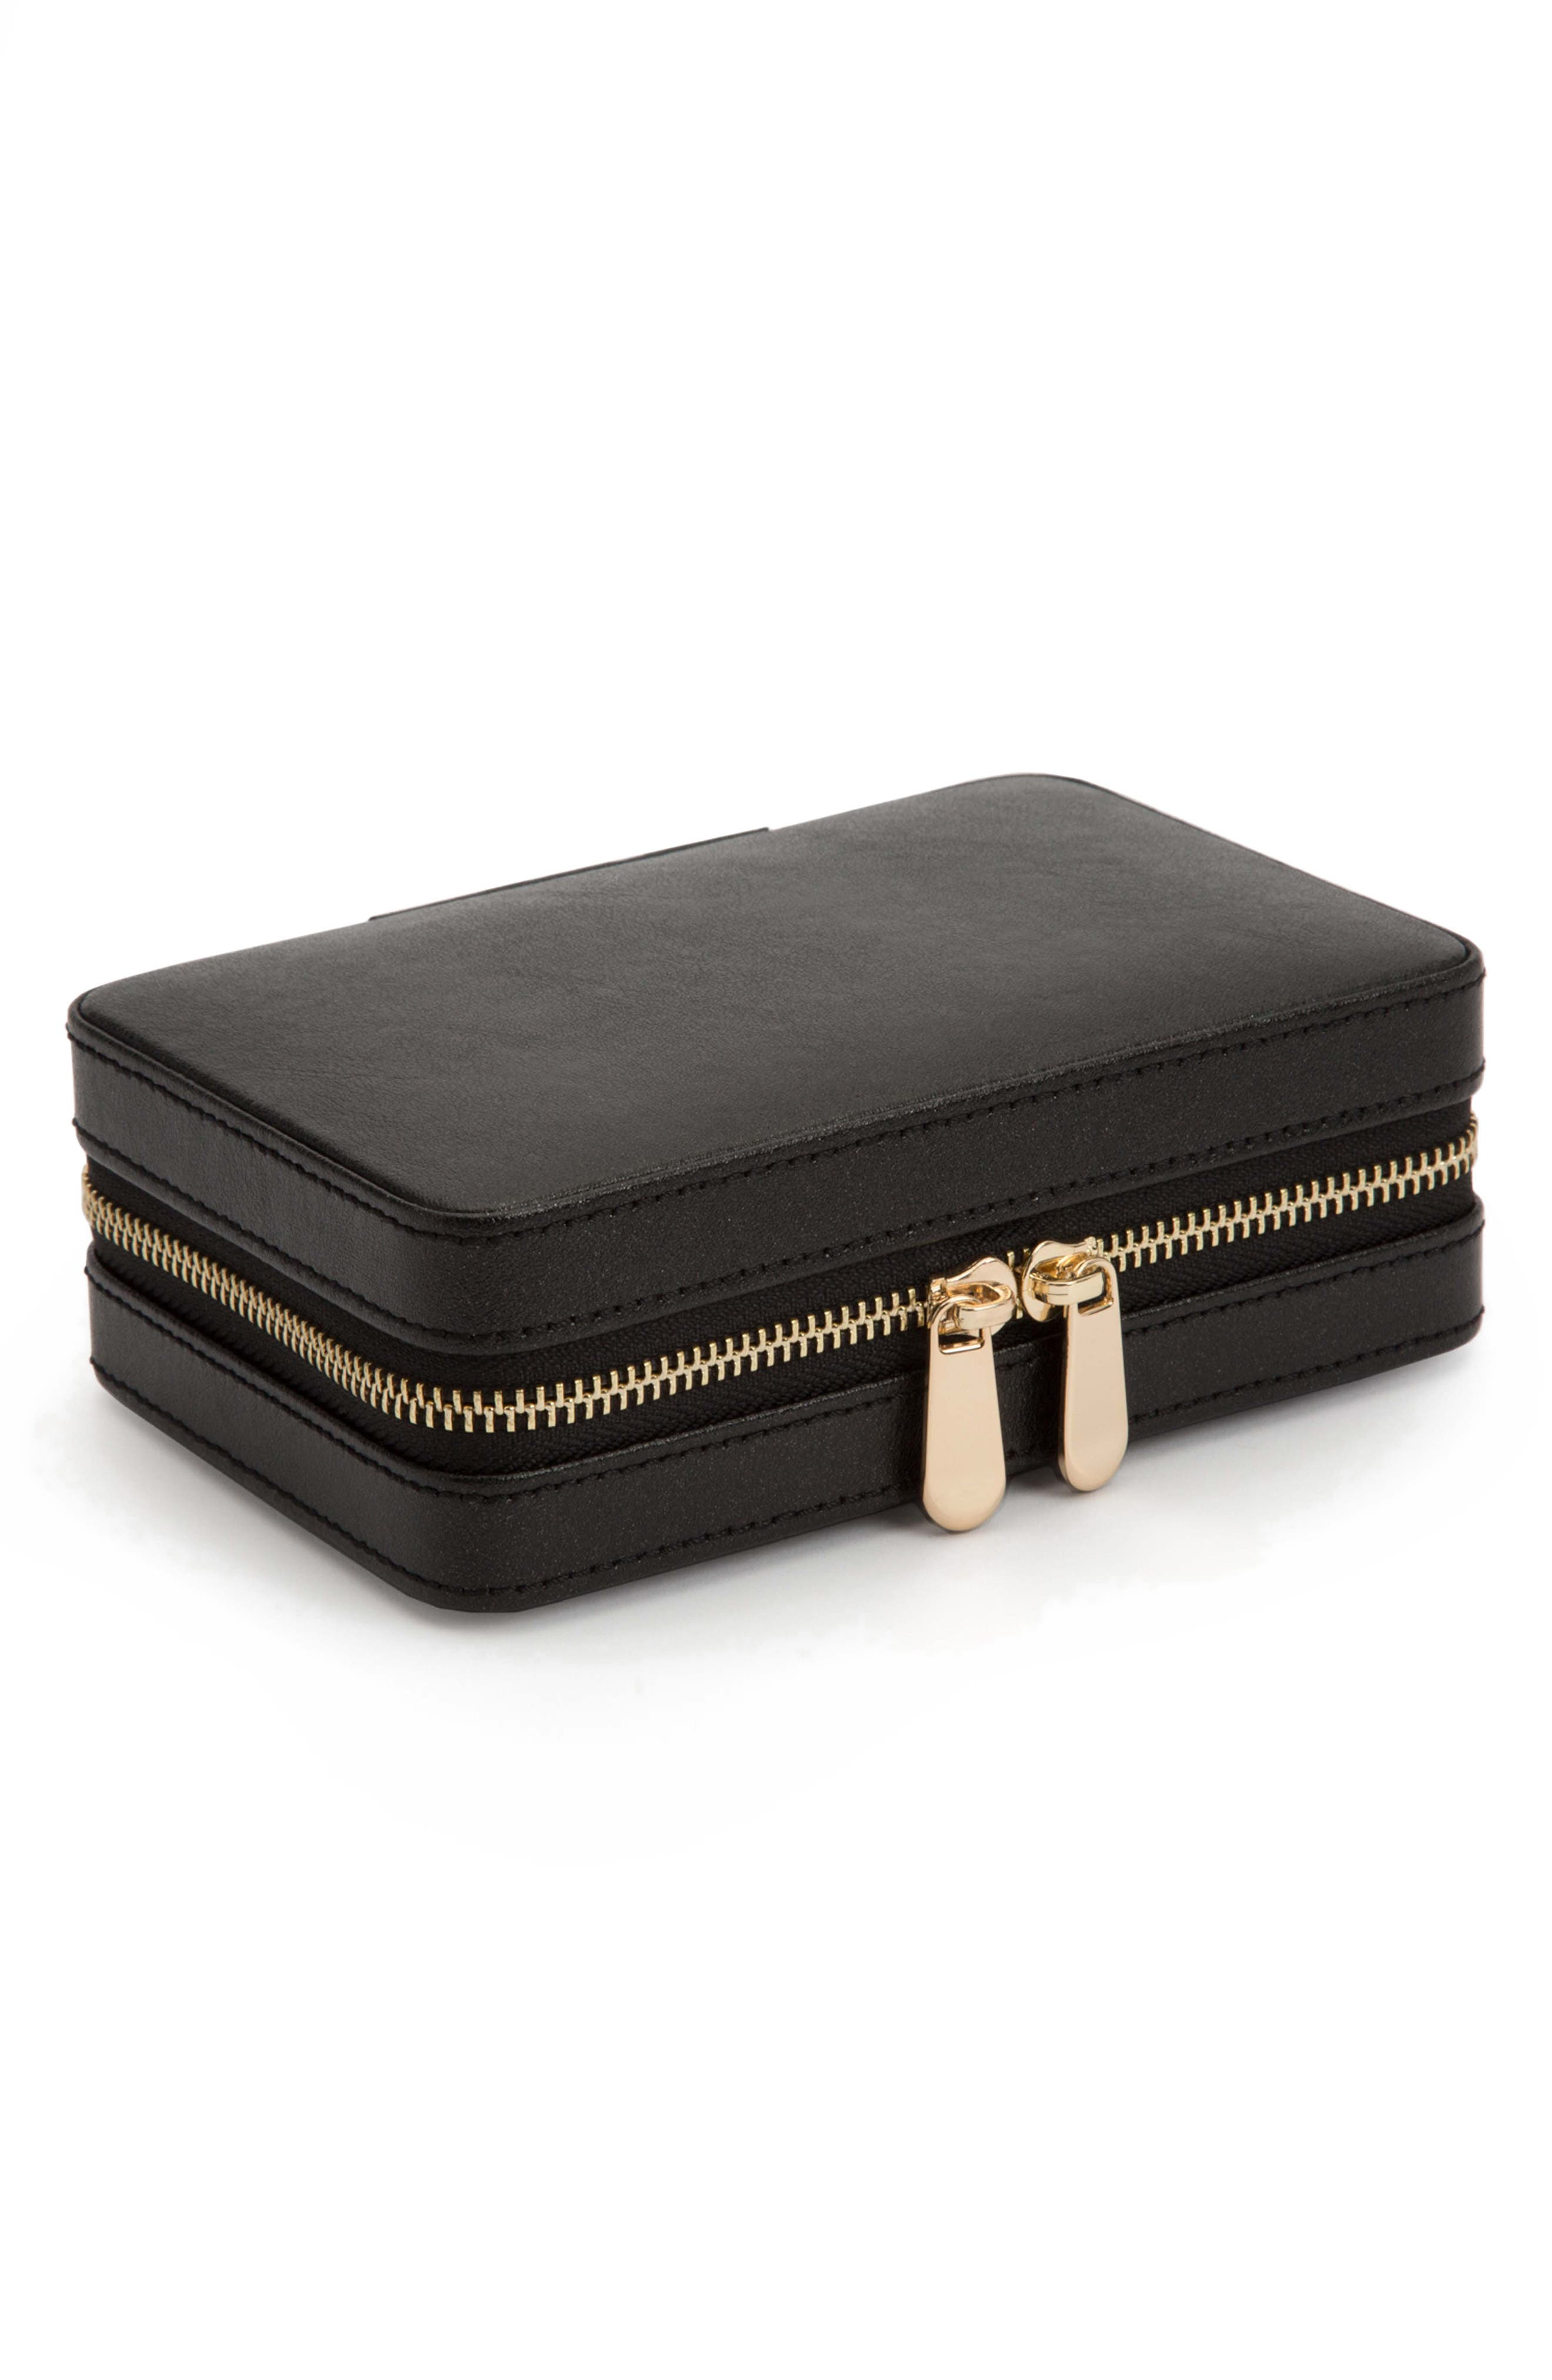 Palermo Zip Jewelry Case,                             Alternate thumbnail 4, color,                             BLACK